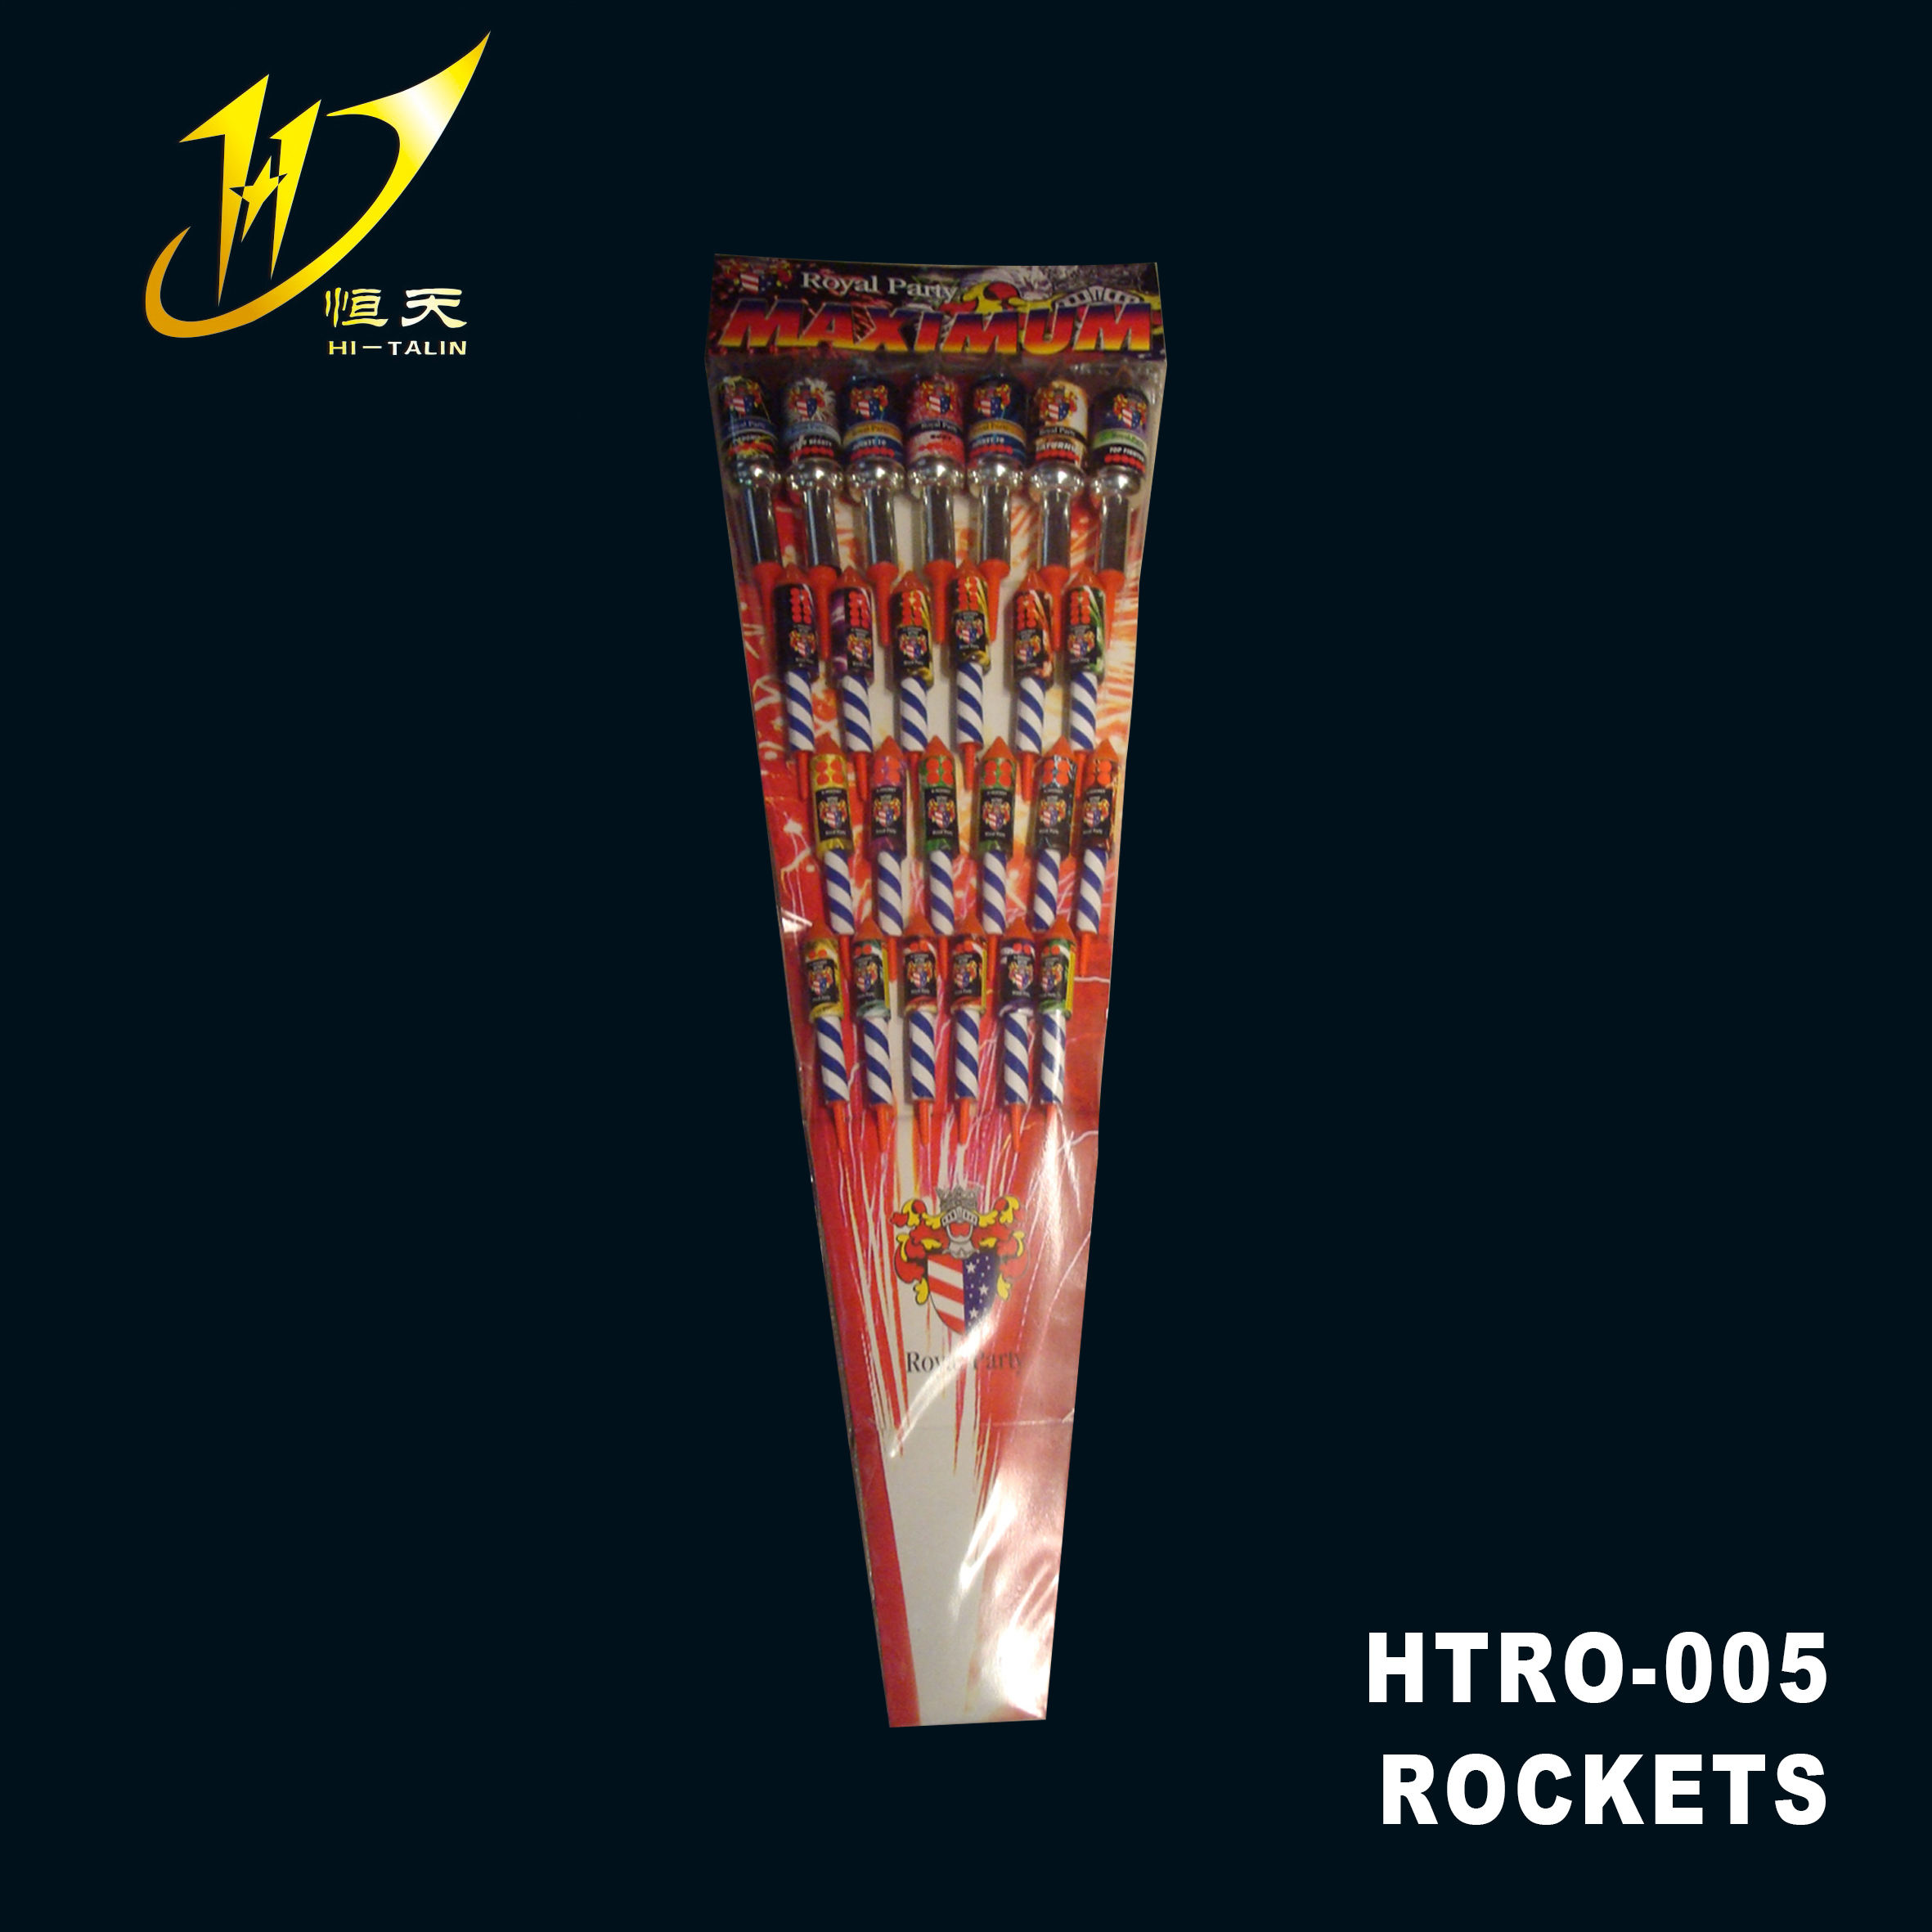 rocket ROCKETS HTRO-005 China fireworks outdoor yeshow pyrotechnics